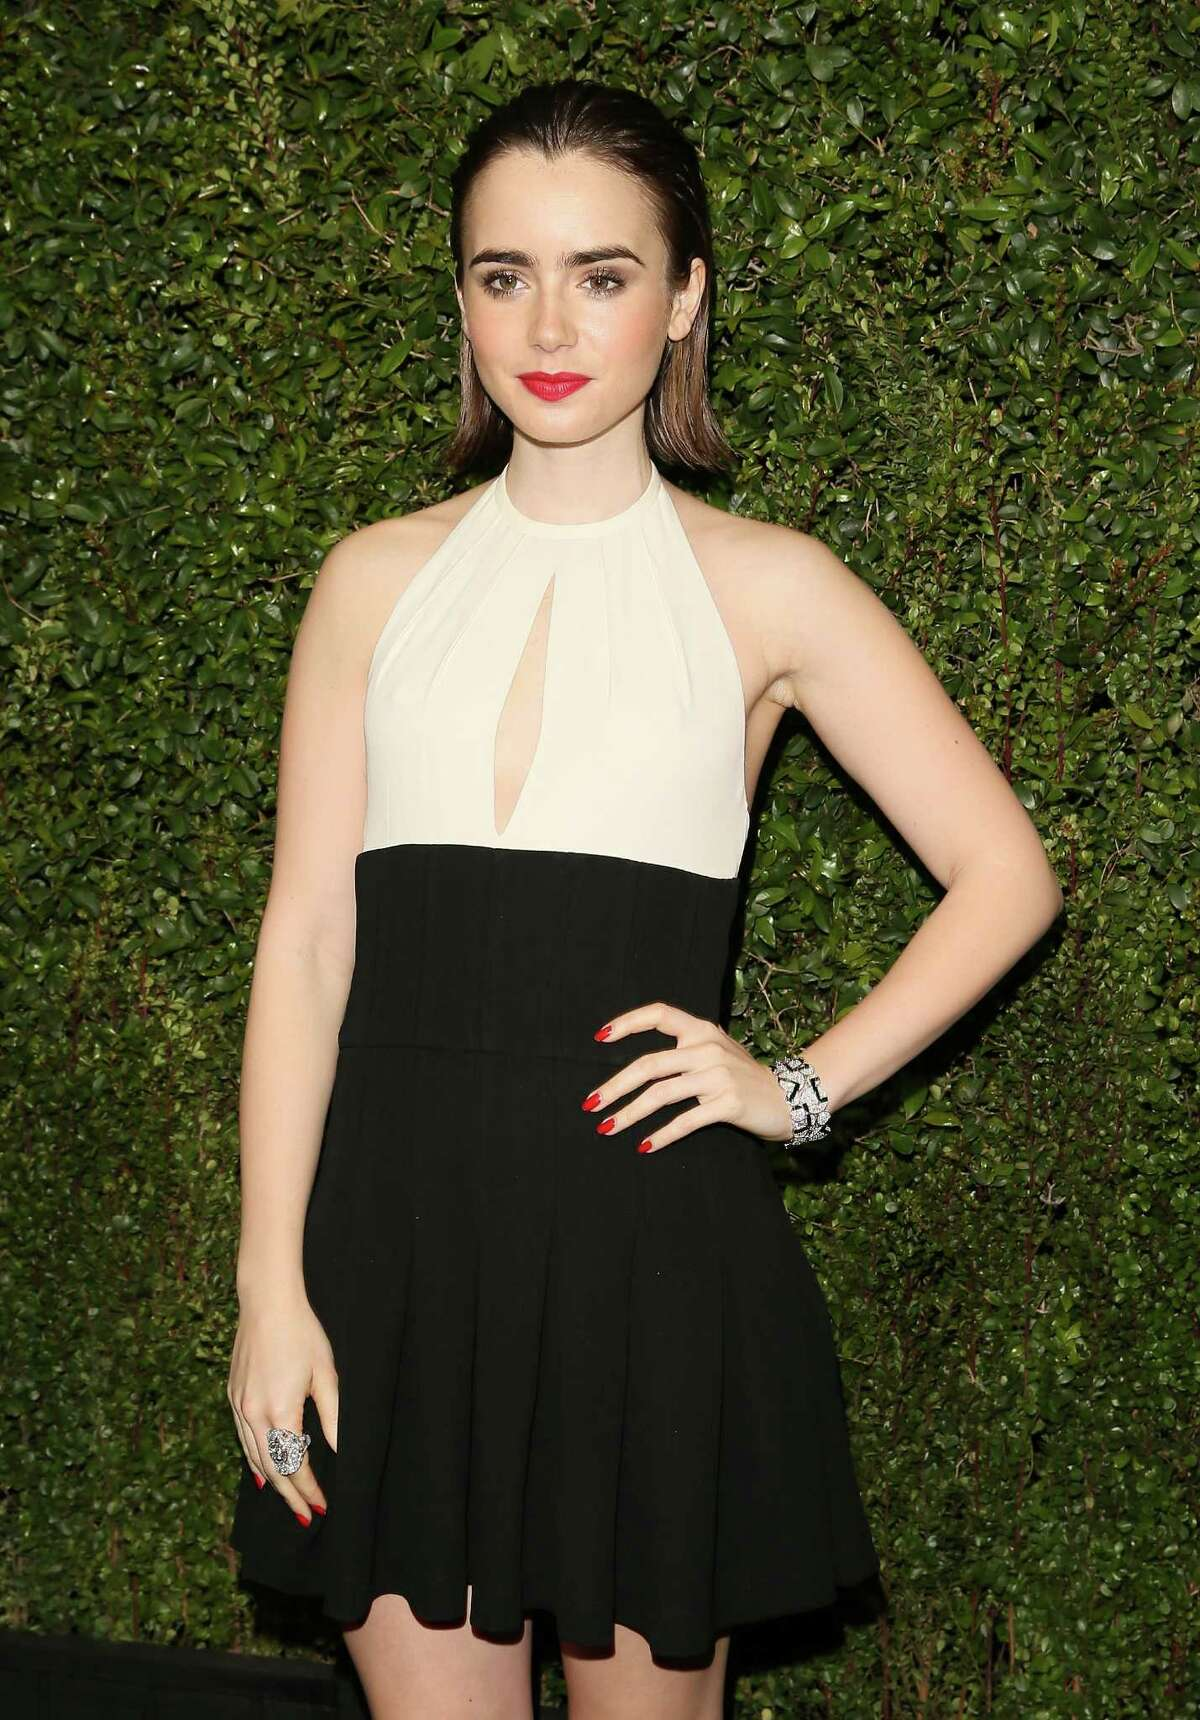 Actress Lily Collins is the daughter of musician Phil Collins. She has starred in